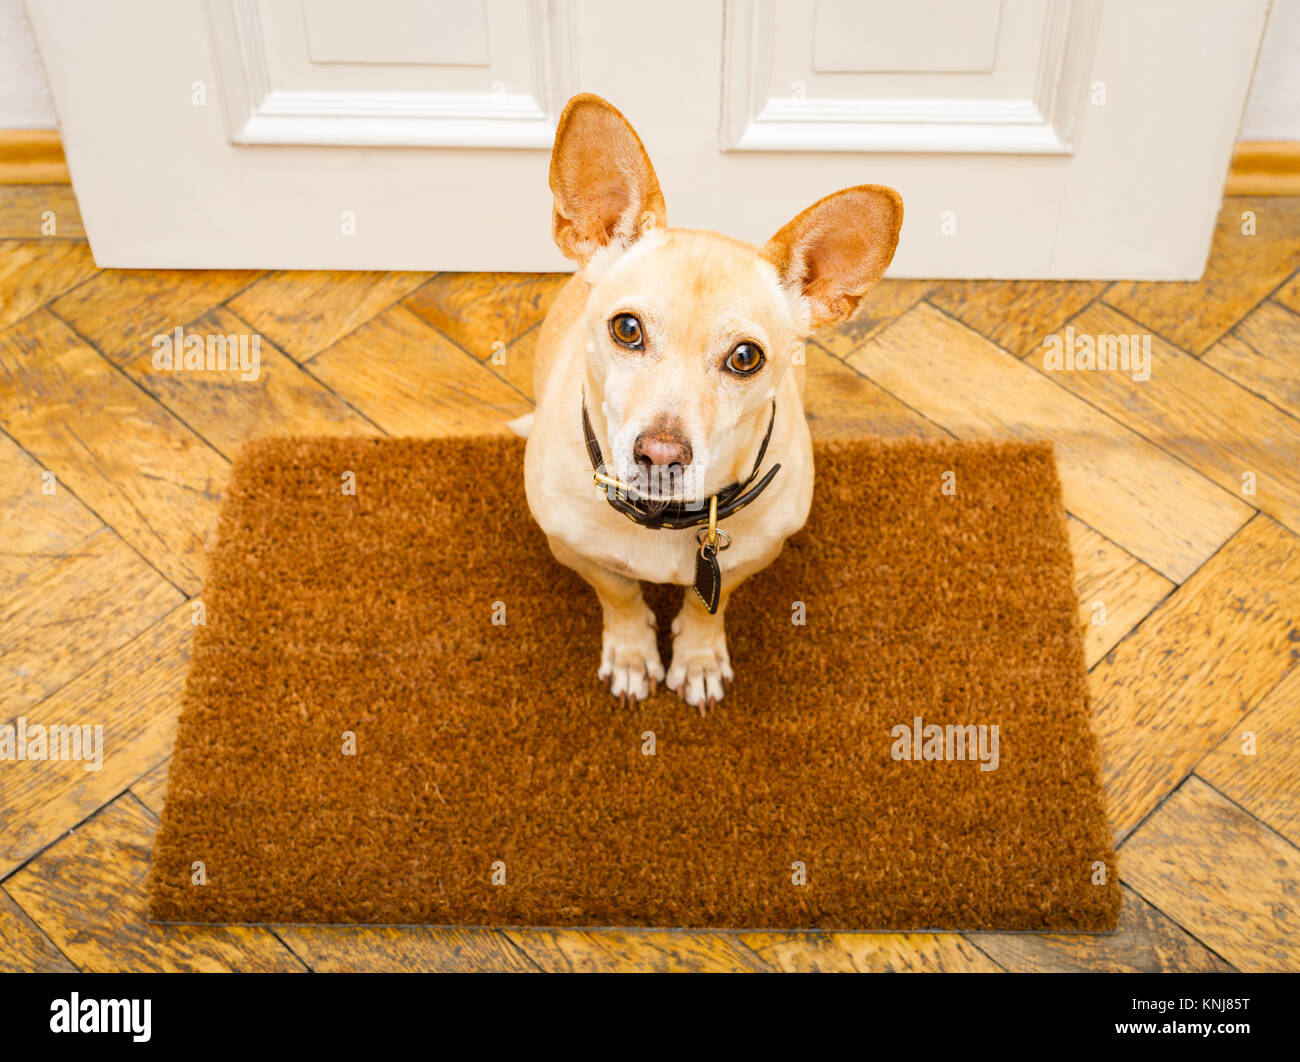 poidenco dog waiting for owner to play  and go for a walk on door mat ,behind home door entrance - Stock Image